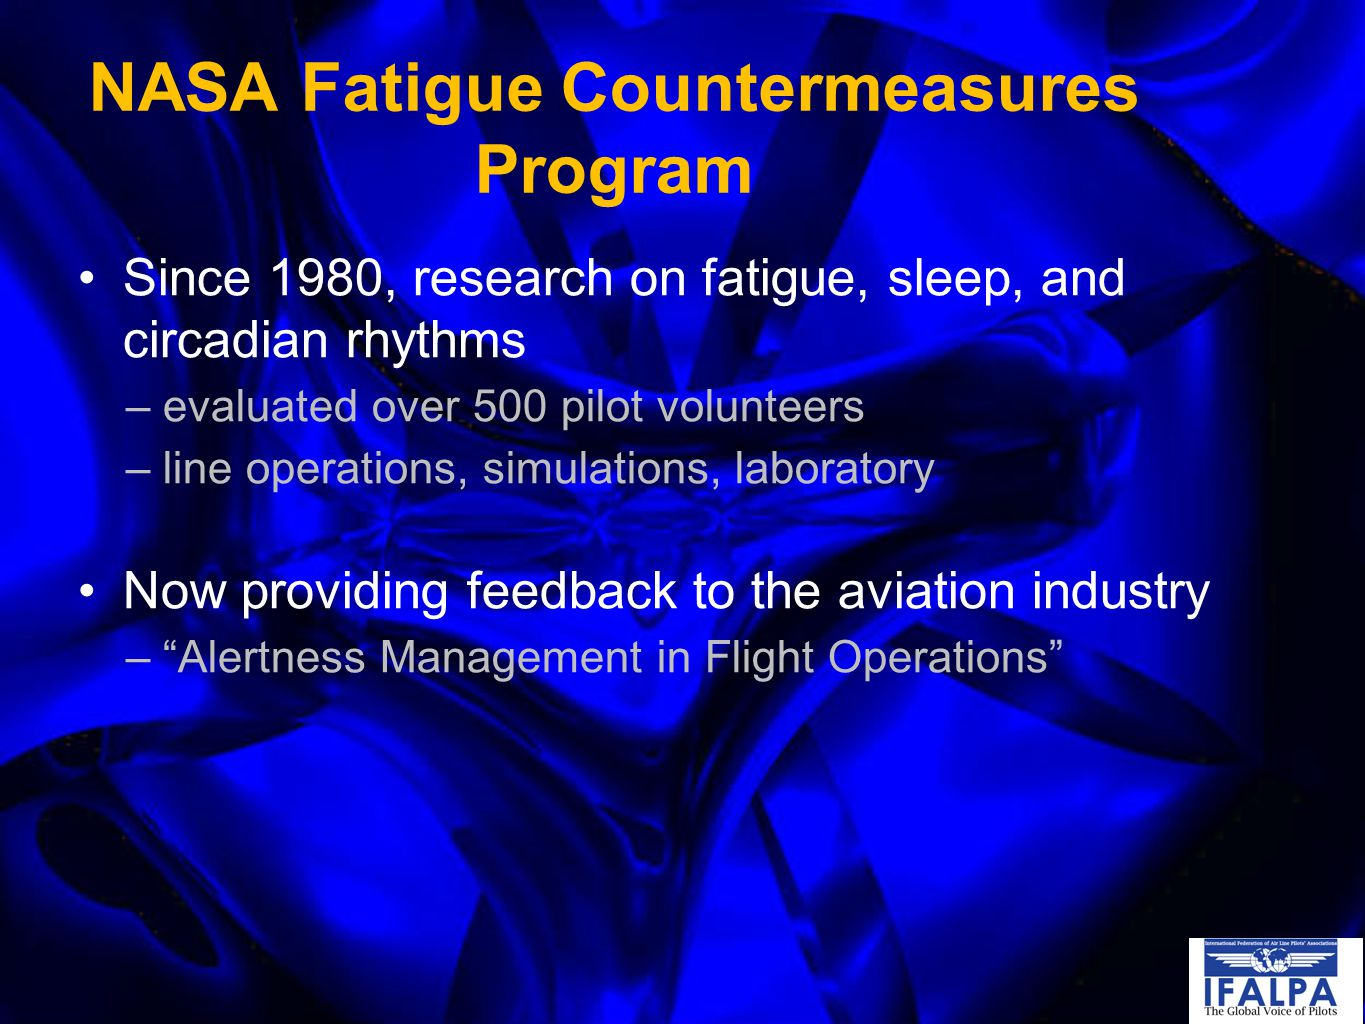 NASA Fatigue Countermeasures Program Since 1980, research on fatigue, sleep, and circadian rhythms –evaluated over 500 pilot volunteers –line operations, simulations, laboratory Now providing feedback to the aviation industry – Alertness Management in Flight Operations